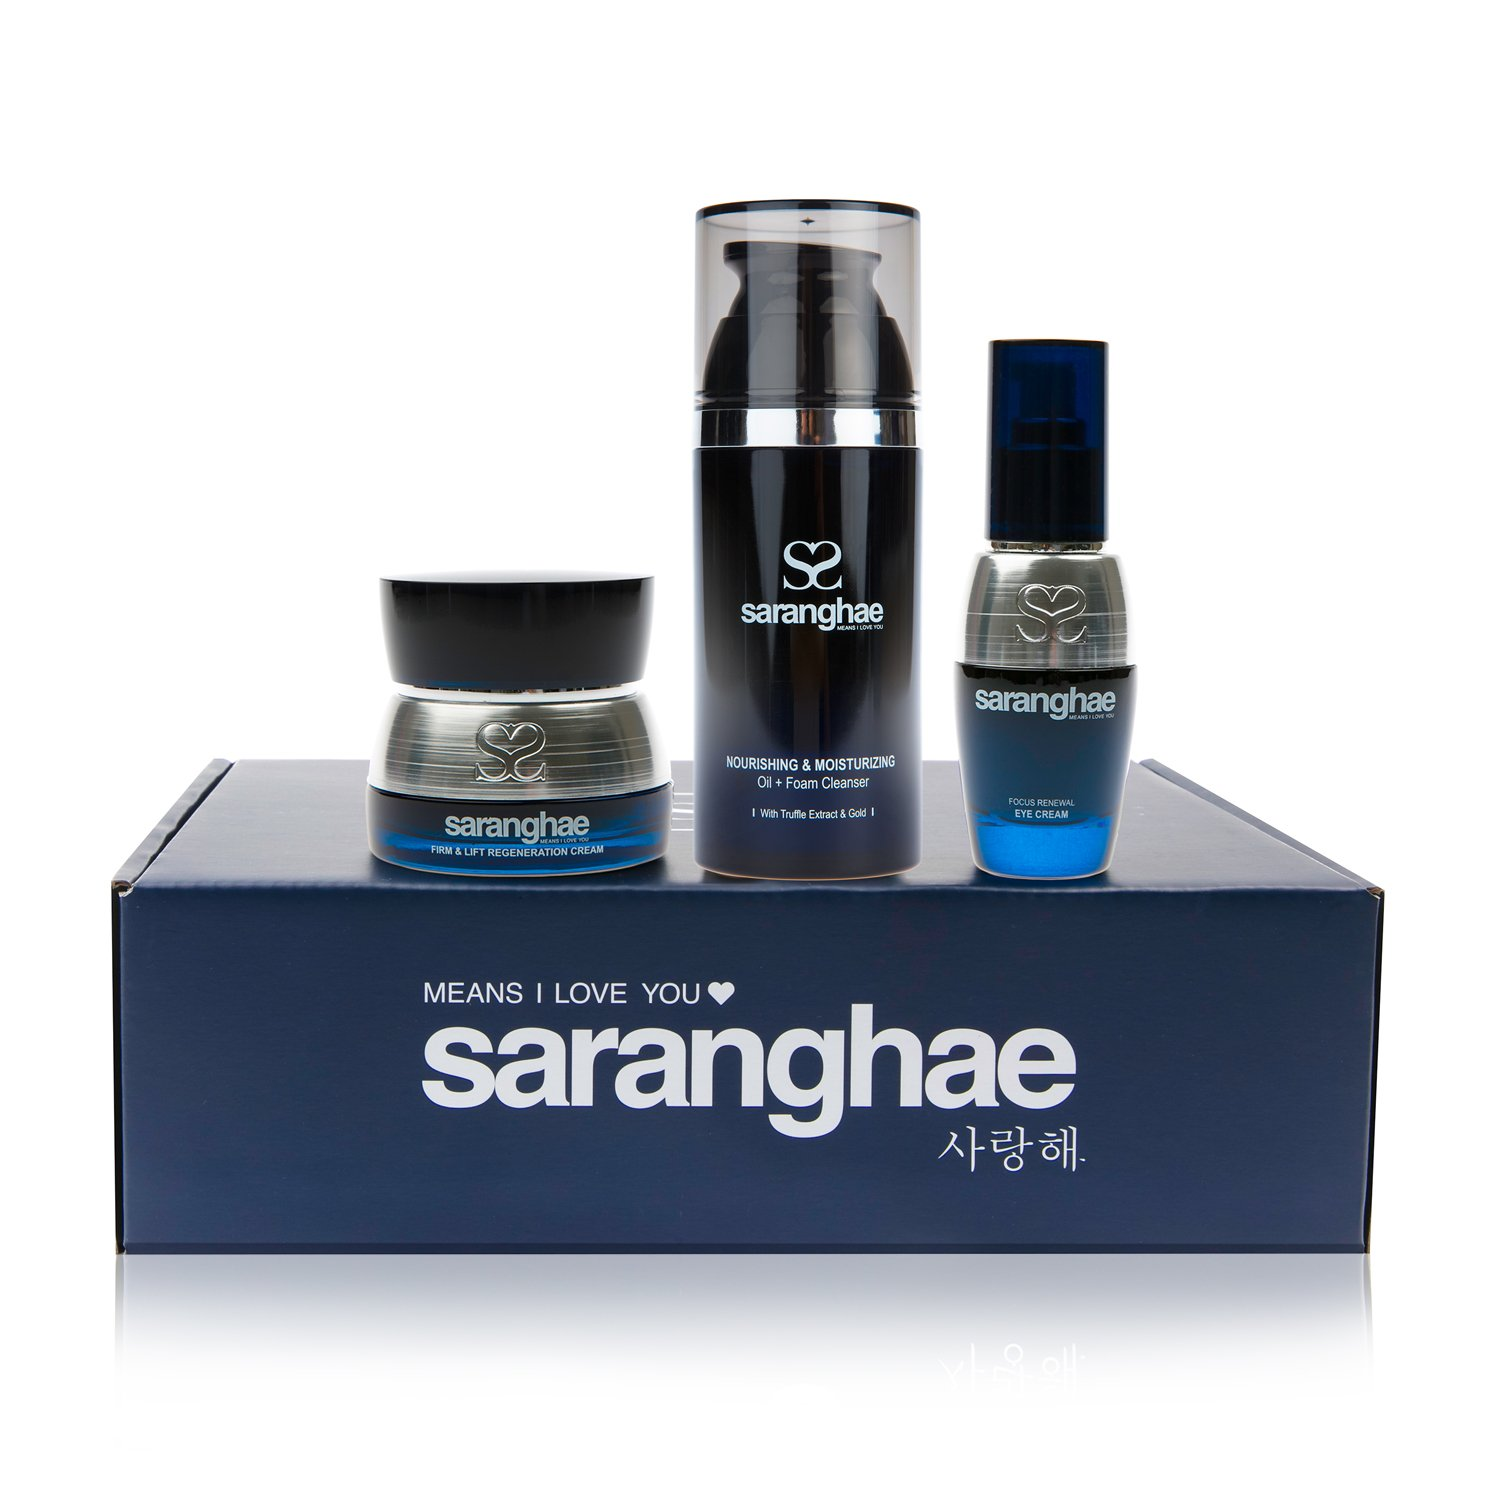 Saranghae Essentials Bundle: Nourishing and Moisturizing Cleanser, Firm and Lift Regeneration Cream, Focus Renewal Eye Cream - Korean Skin Care with an Intense Focus On Healing and Repairing